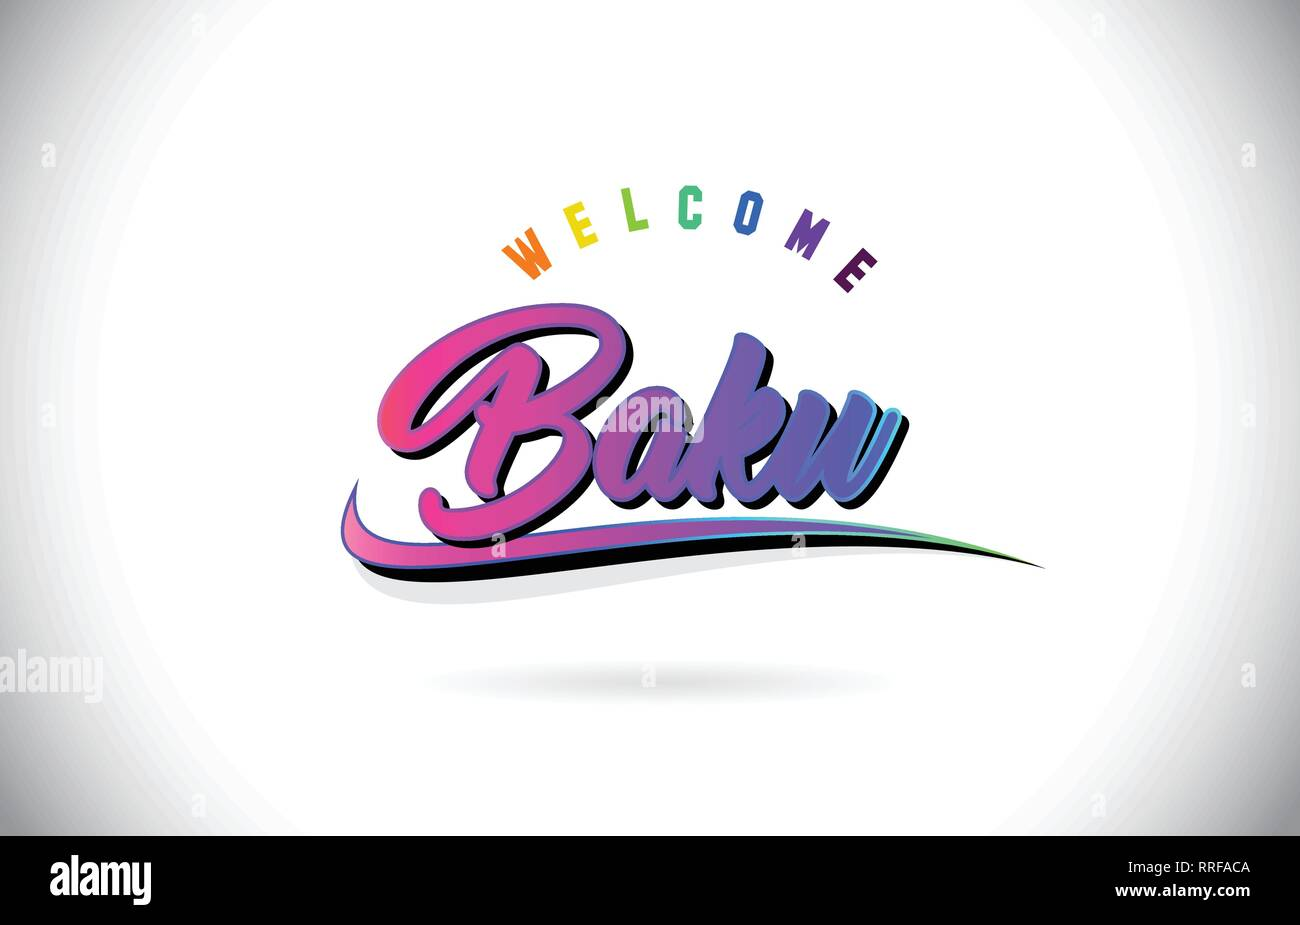 Baku Welcome To Word Text with Creative Purple Pink Handwritten Font and Swoosh Shape Design Vector Illustration. - Stock Vector